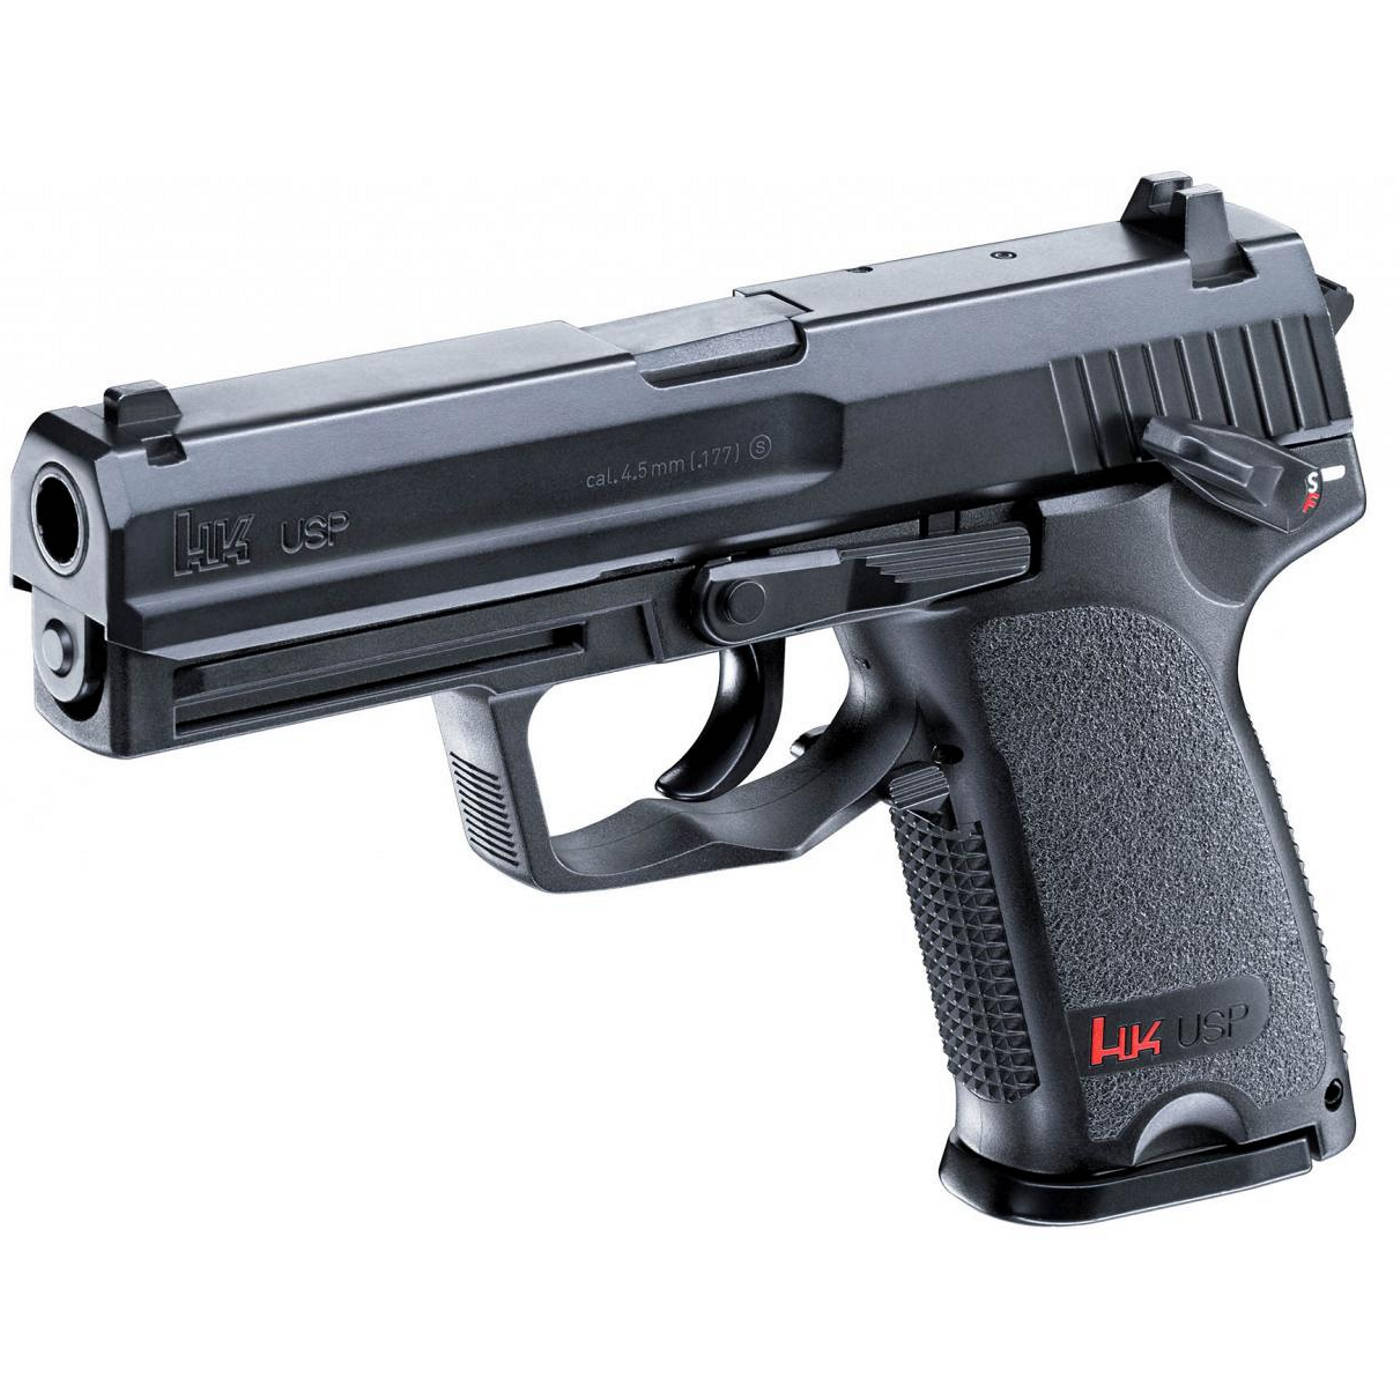 Pistola de CO2 Heckler & Kock ( HK ) USP Calibre 4,5 mm - Semi Auto